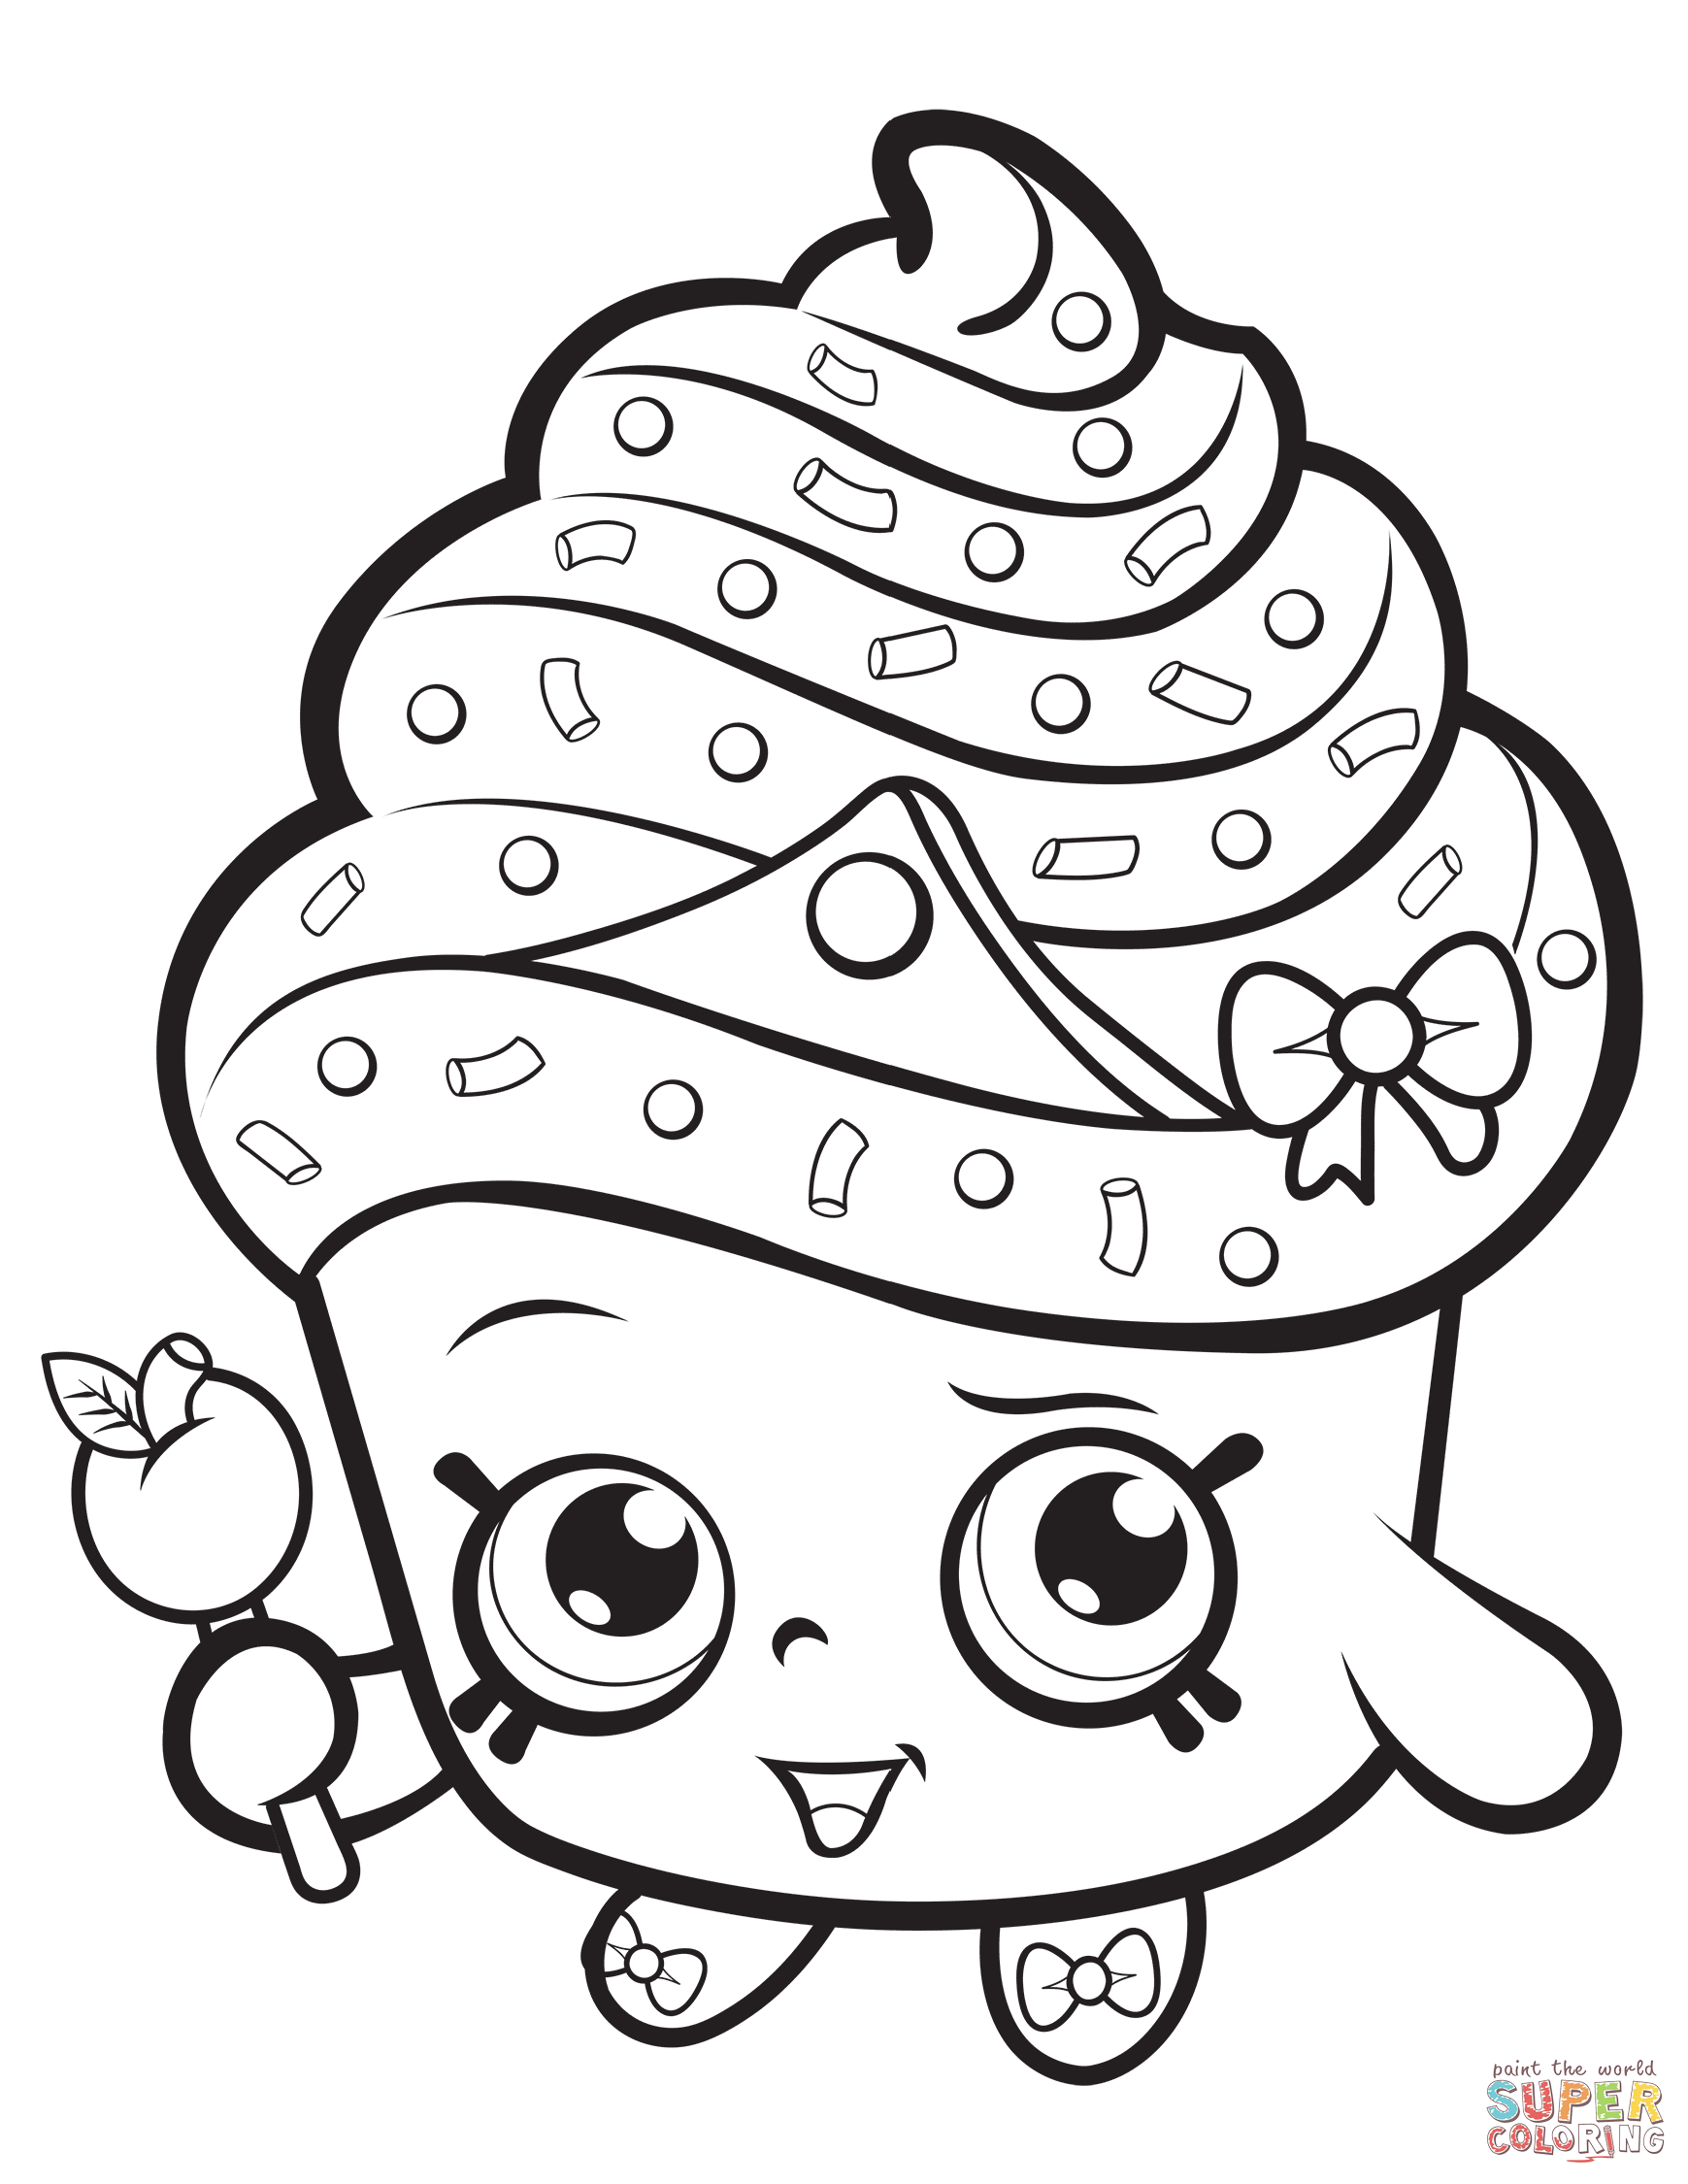 Cupcake Queen Shopkin Coloring Page Free Printable Coloring Pages